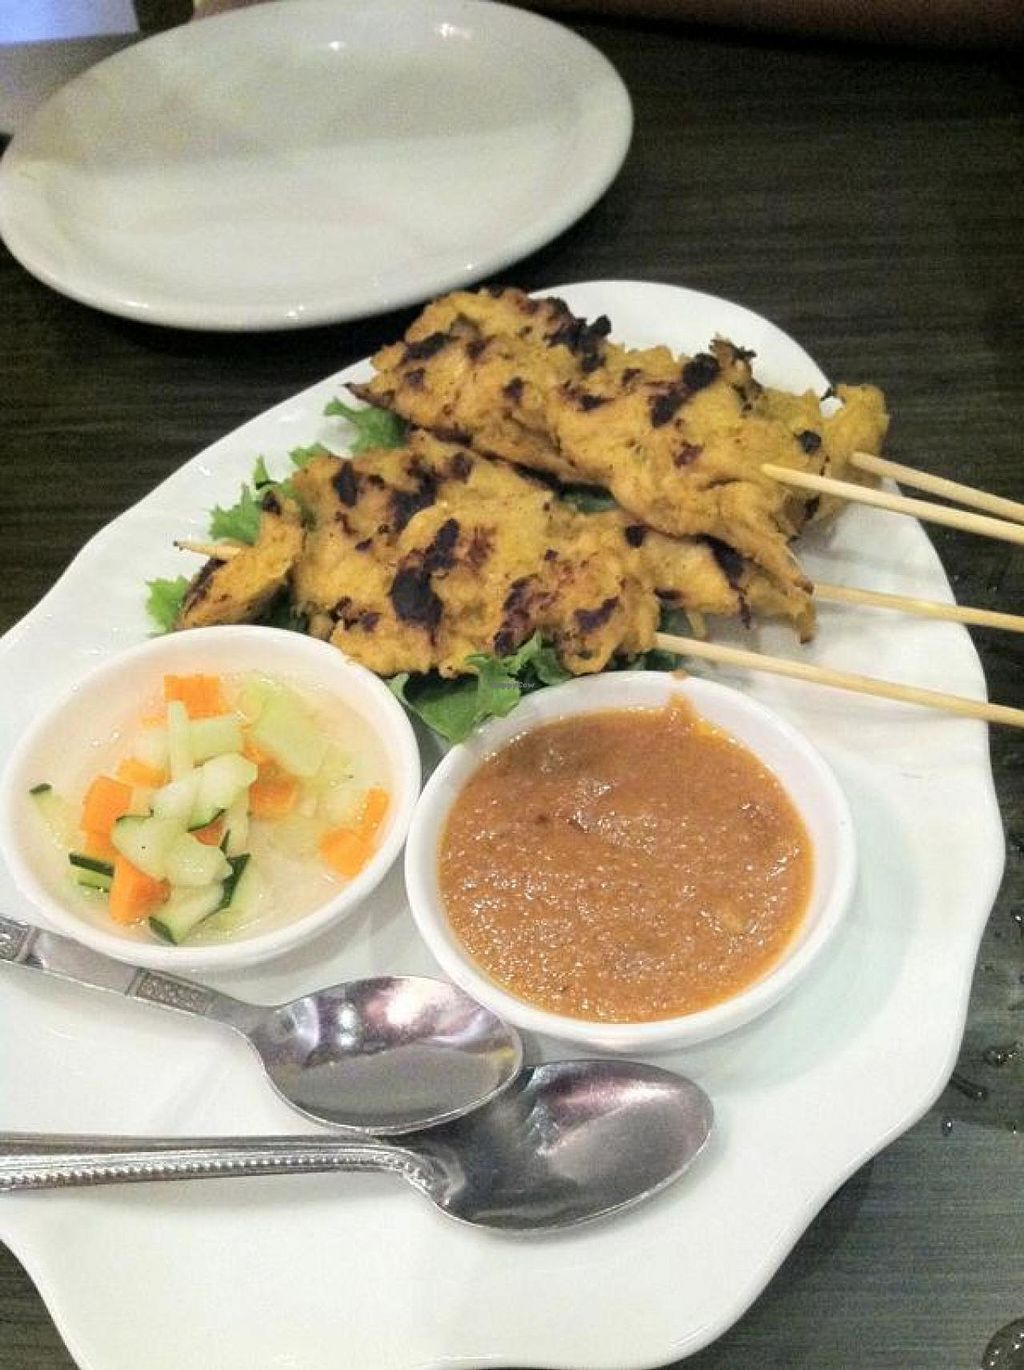 """Photo of Plumeria  by <a href=""""/members/profile/Meggie%20and%20Ben"""">Meggie and Ben</a> <br/>Chick'n satay with peanut sauce <br/> December 1, 2014  - <a href='/contact/abuse/image/33396/86972'>Report</a>"""